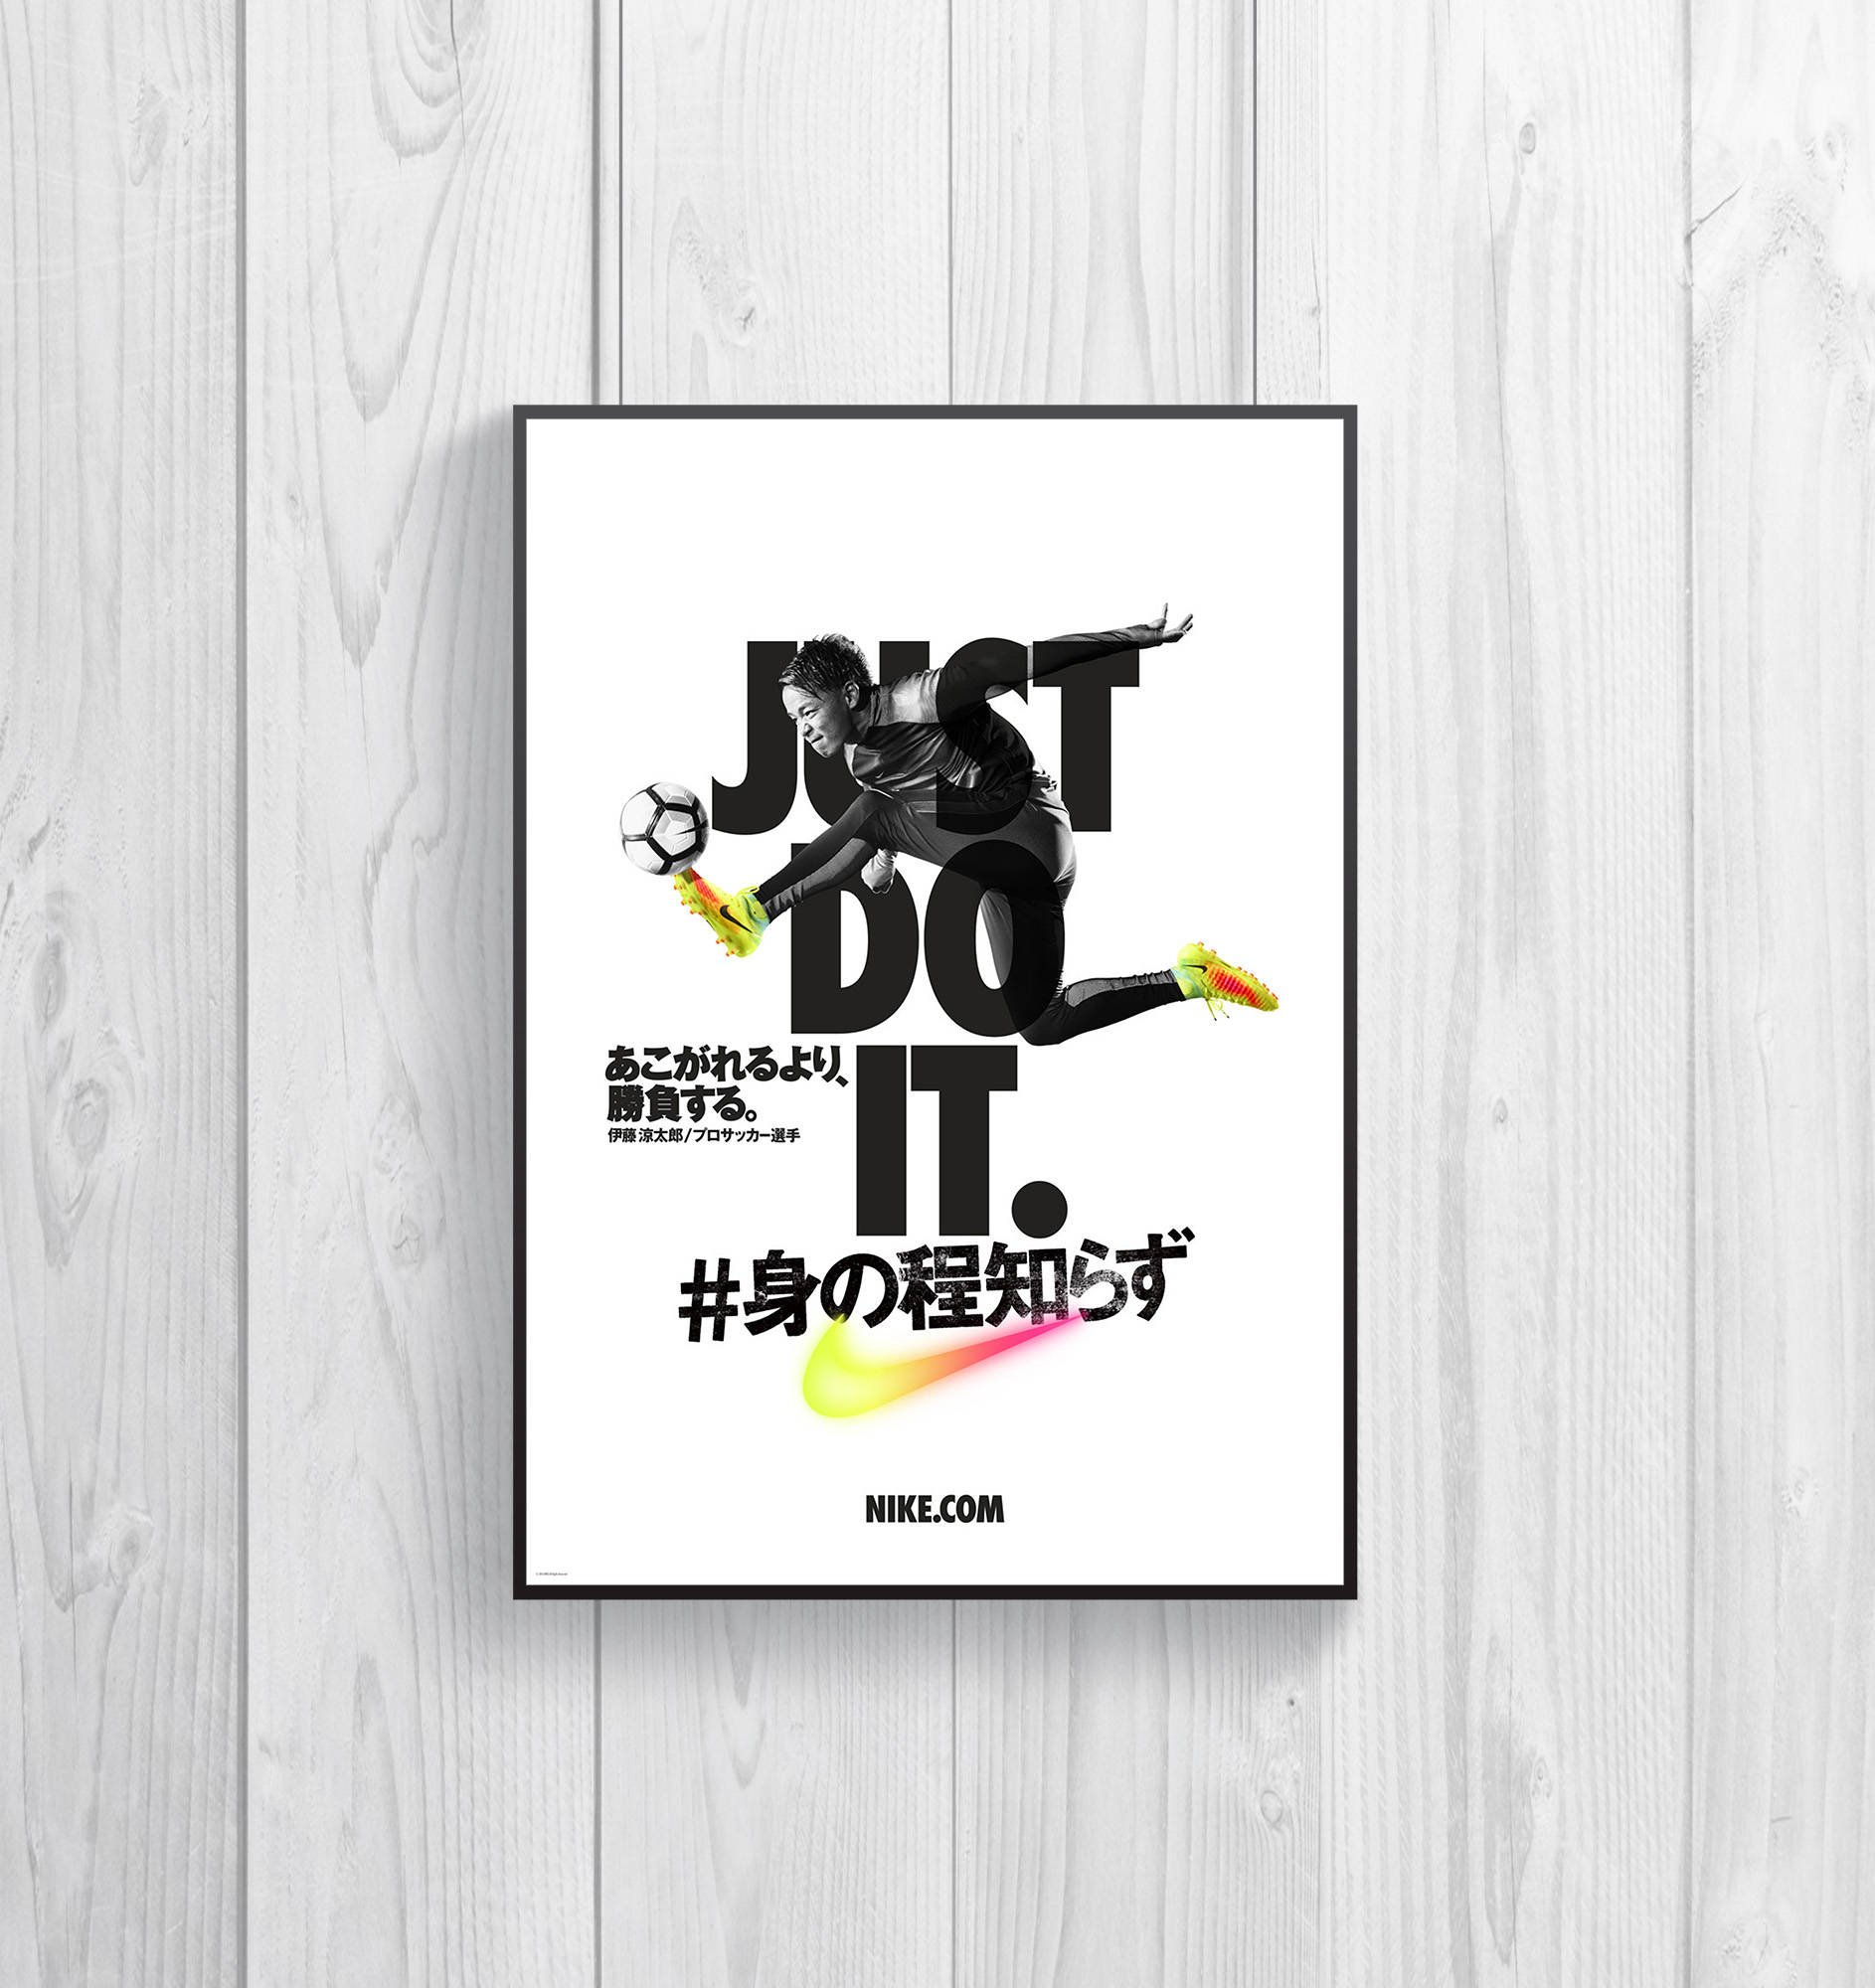 Nike Just Do It Minimalist Poster Example Venngage Poster Examples